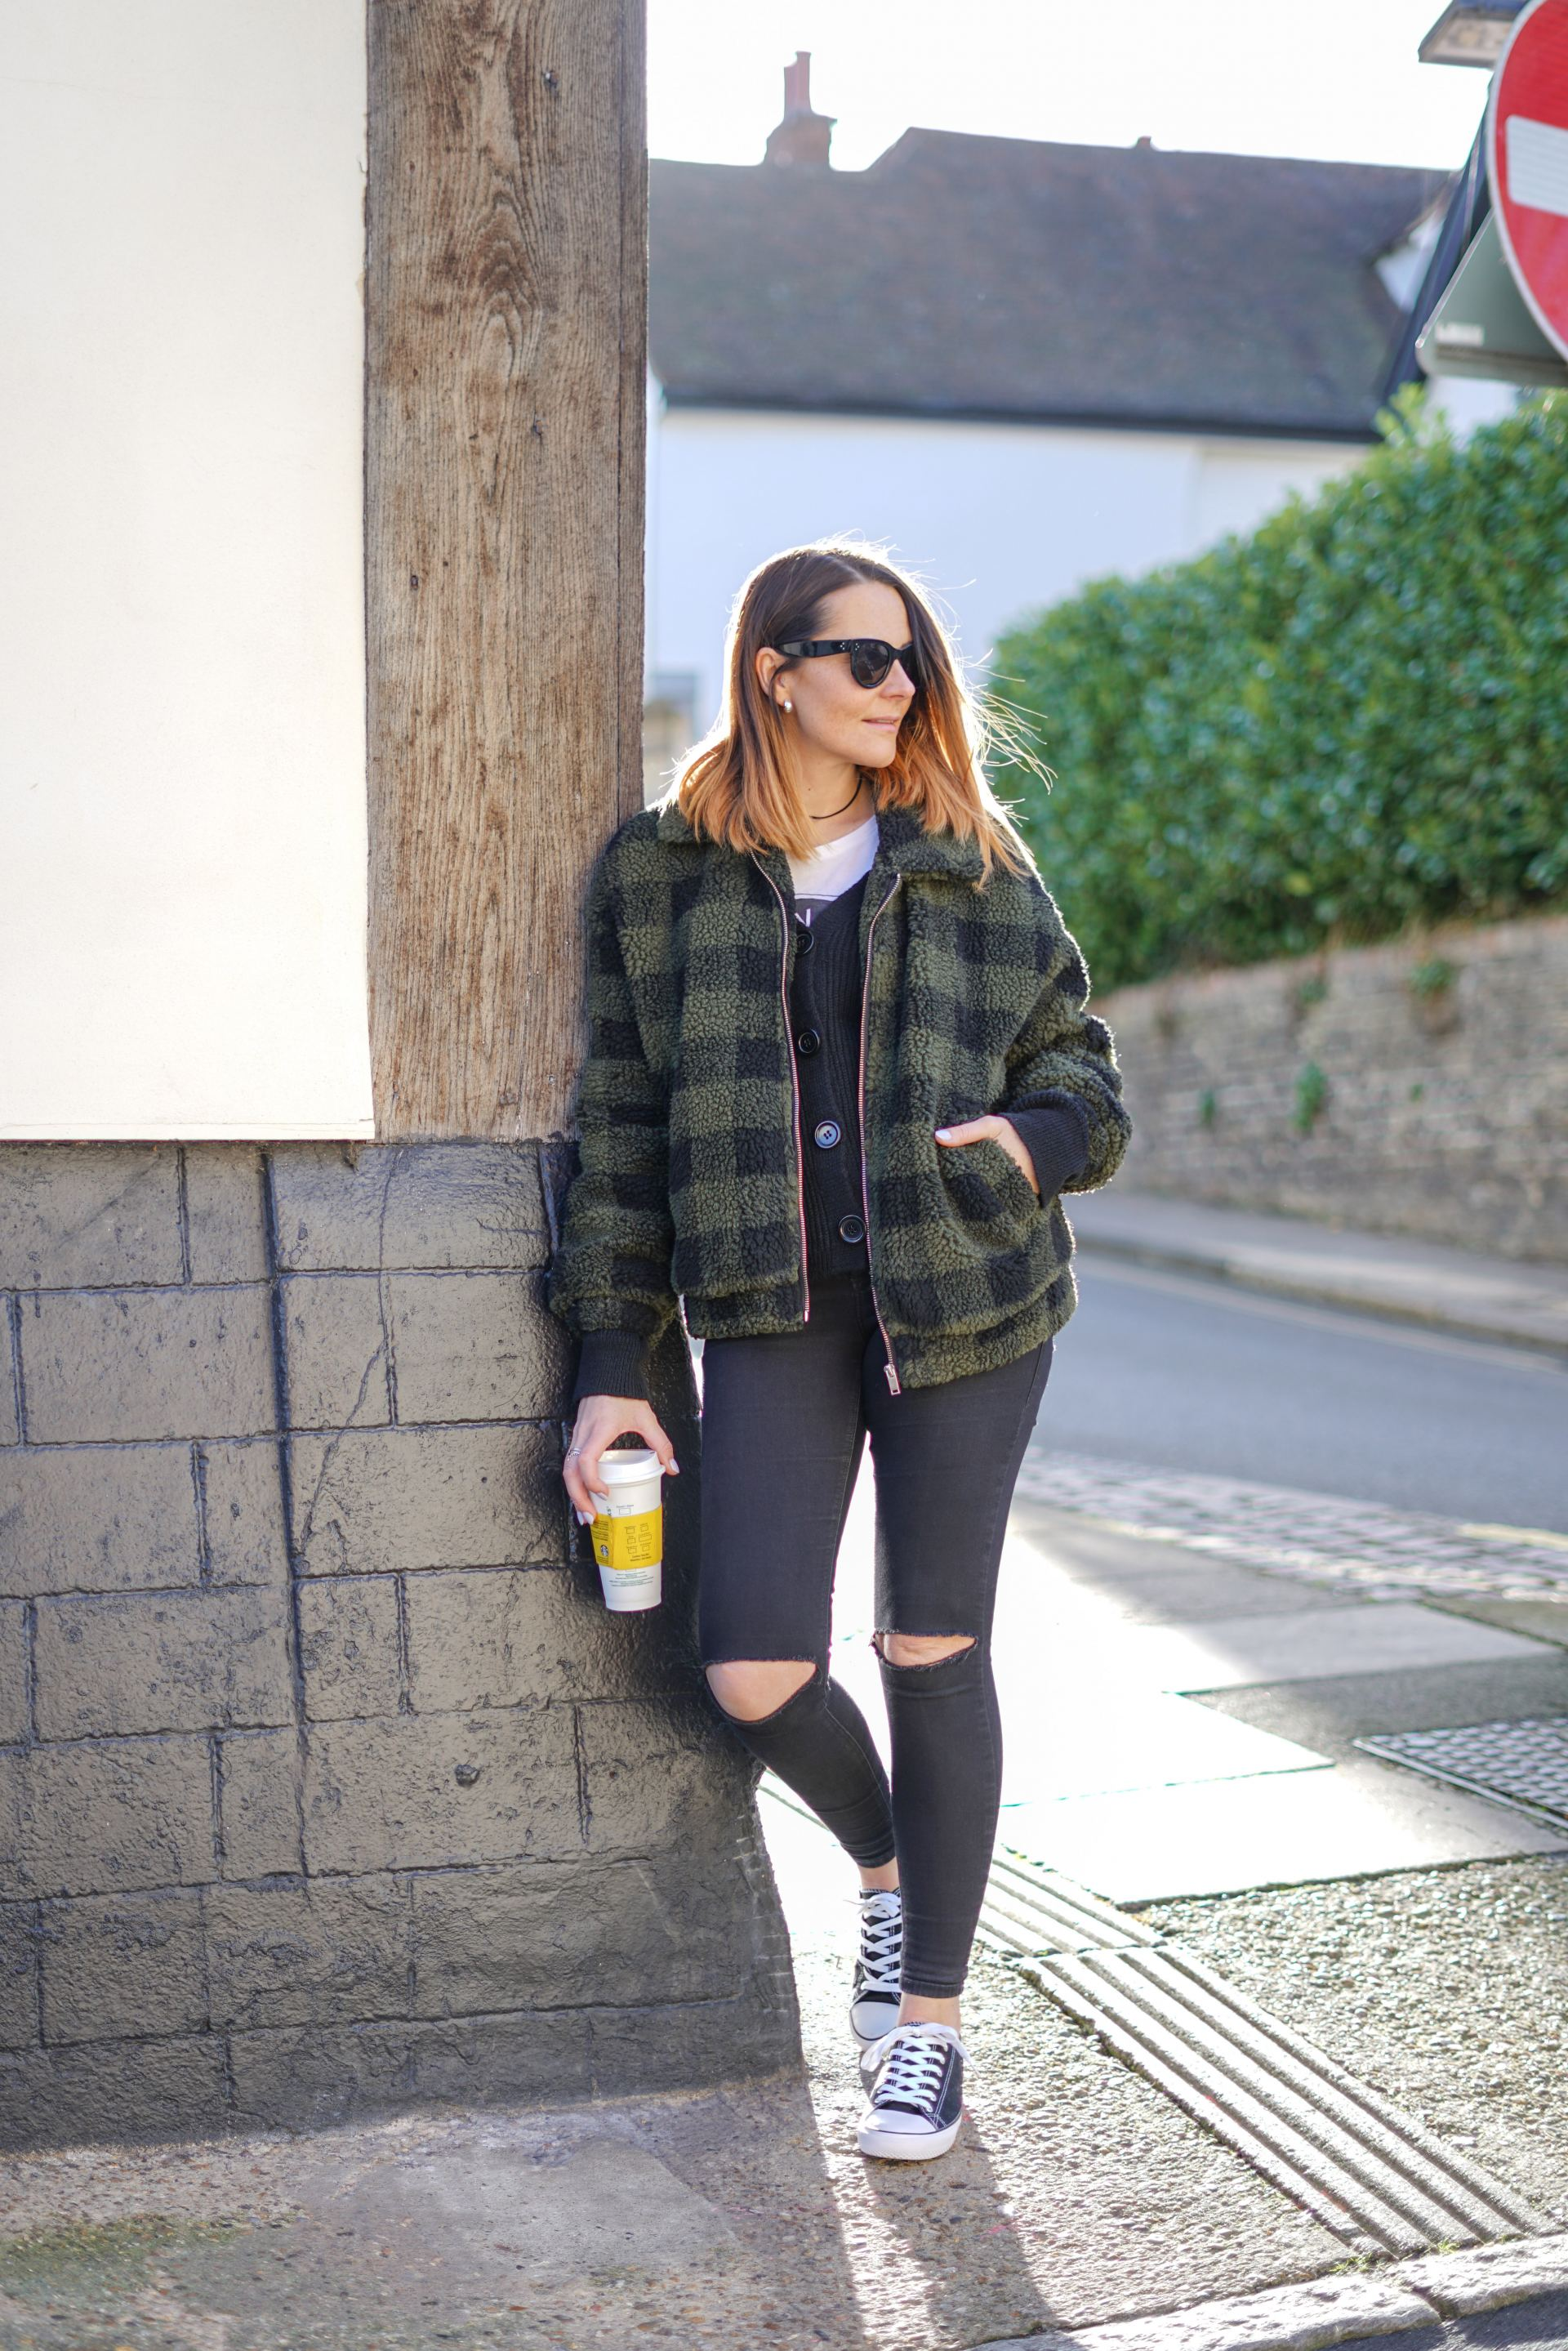 new look jacket and ripped black jeans outfit